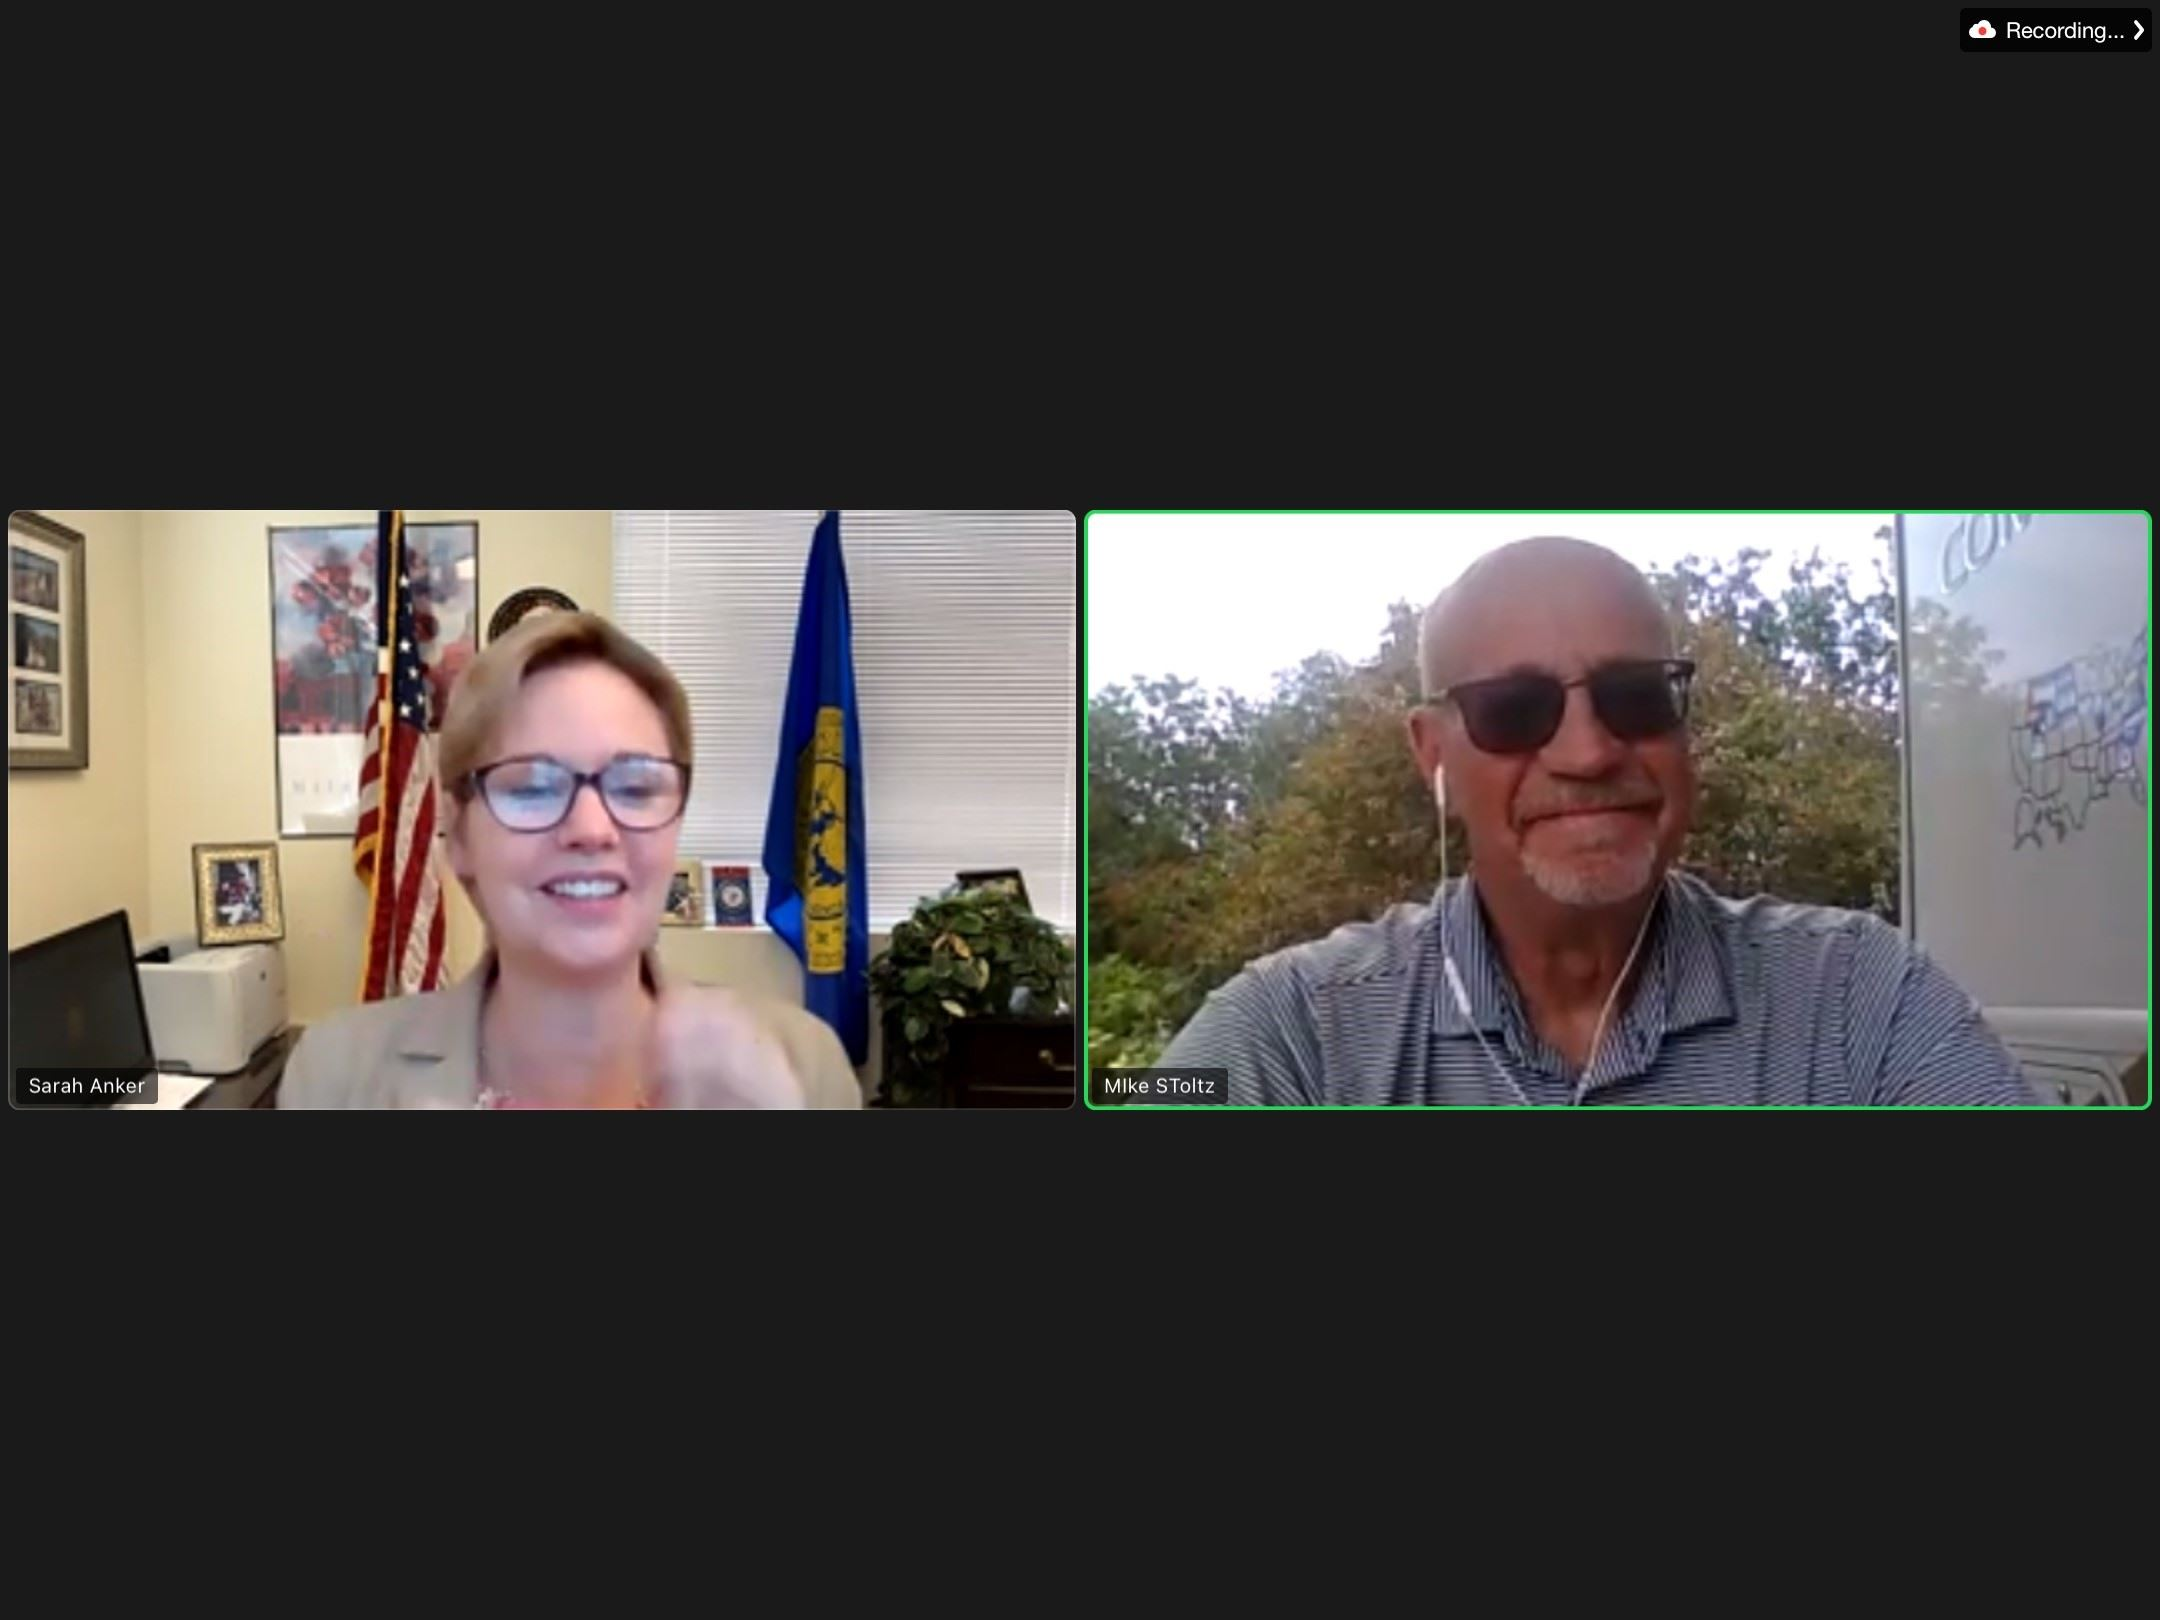 Legislator Sarah Anker and Michael Stoltz join together over Zoom